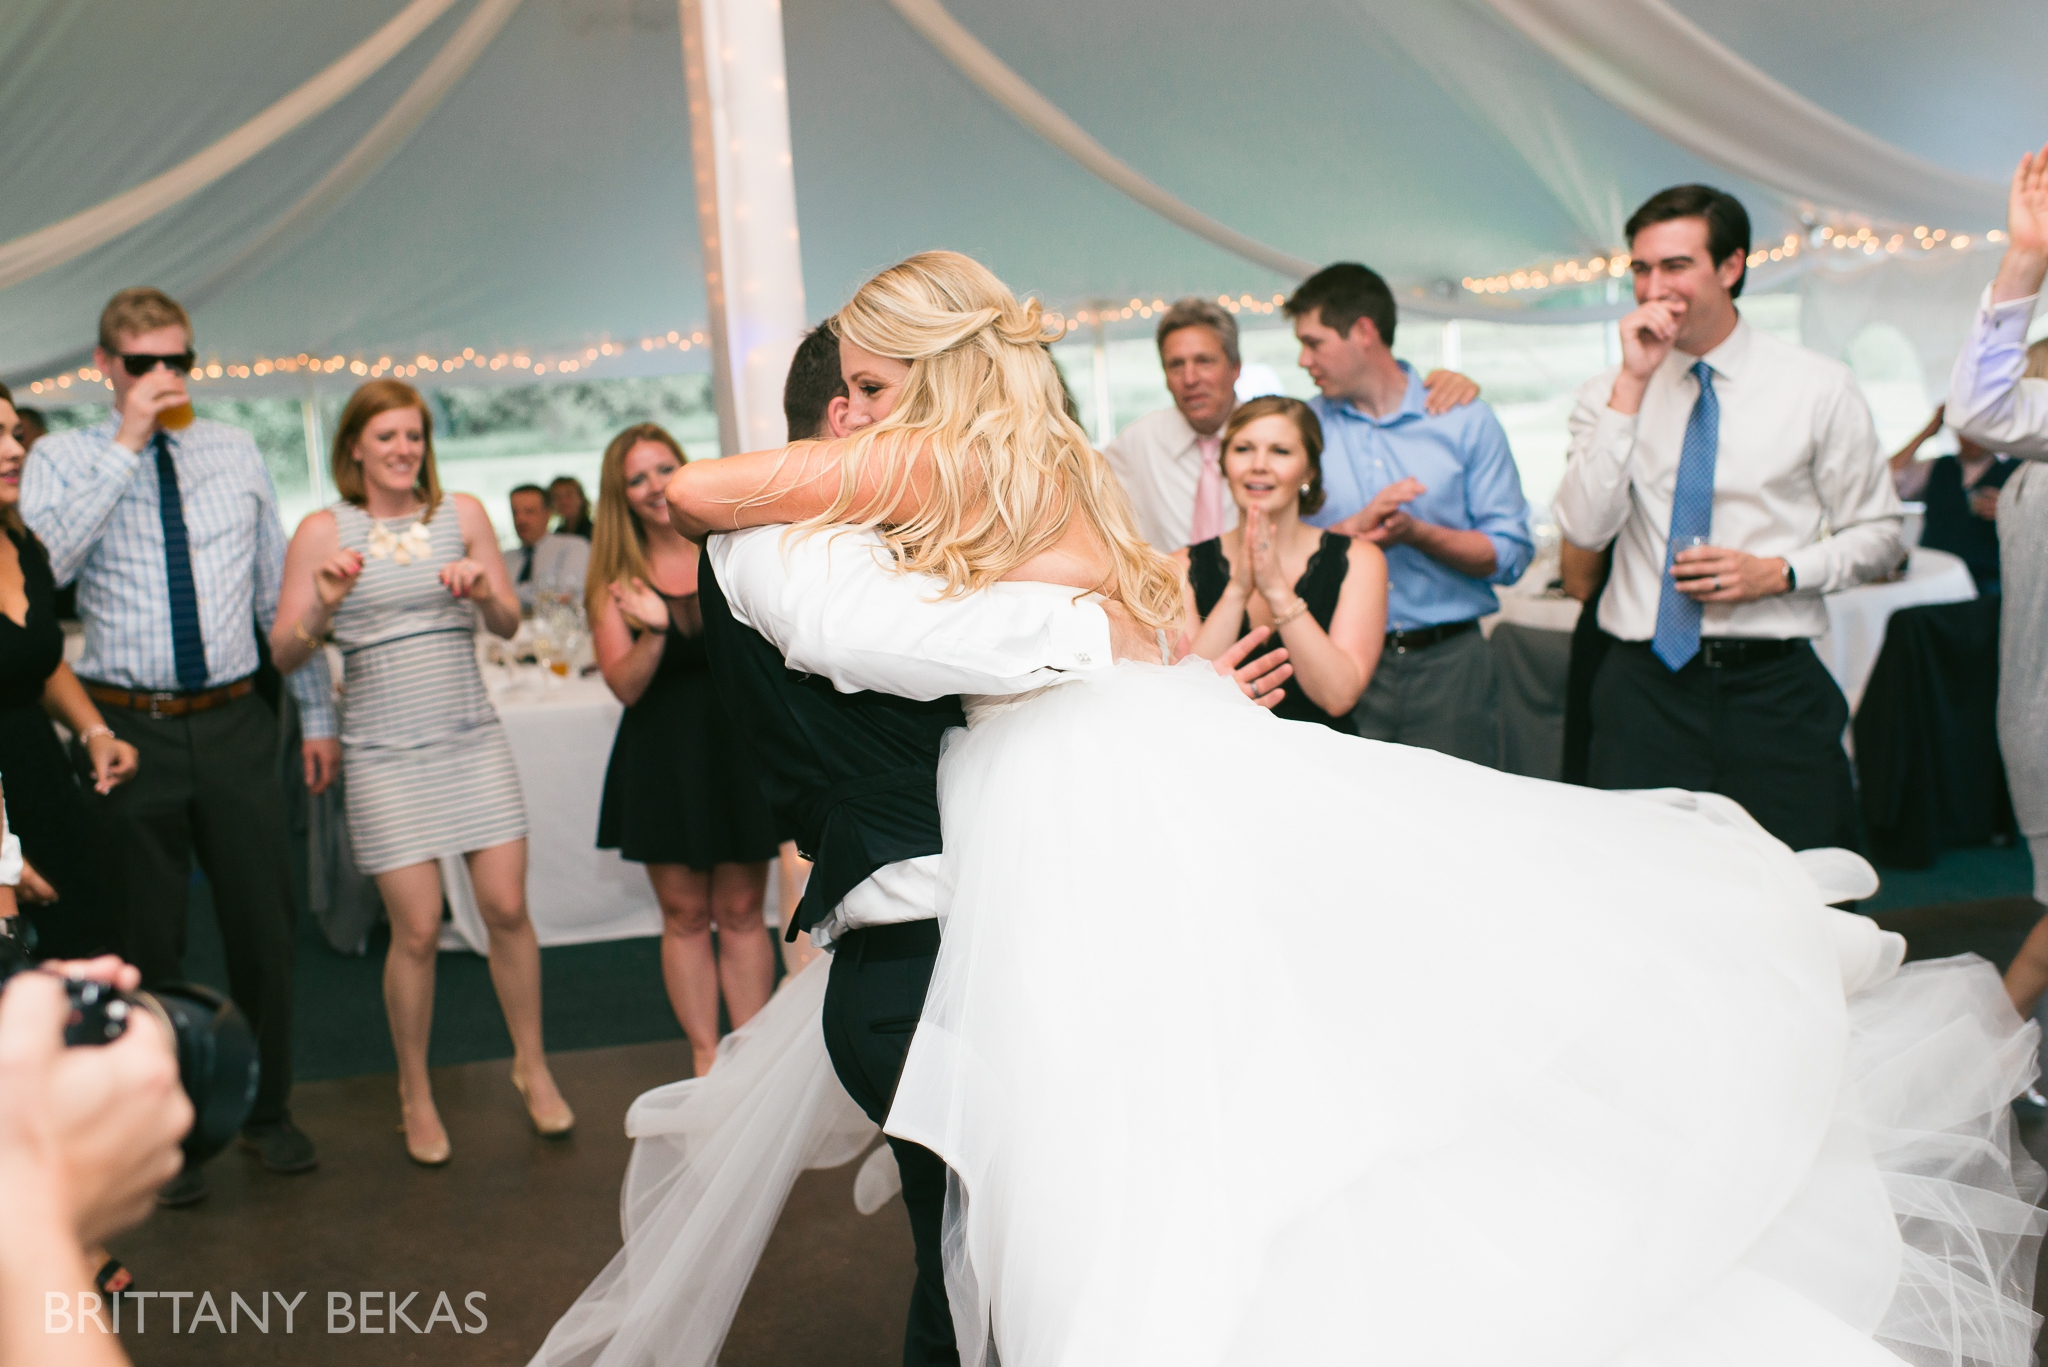 New Buffalo Wedding - Willow Harbor Vineyards Wedding Photos - Brittany Bekas Photography_0056